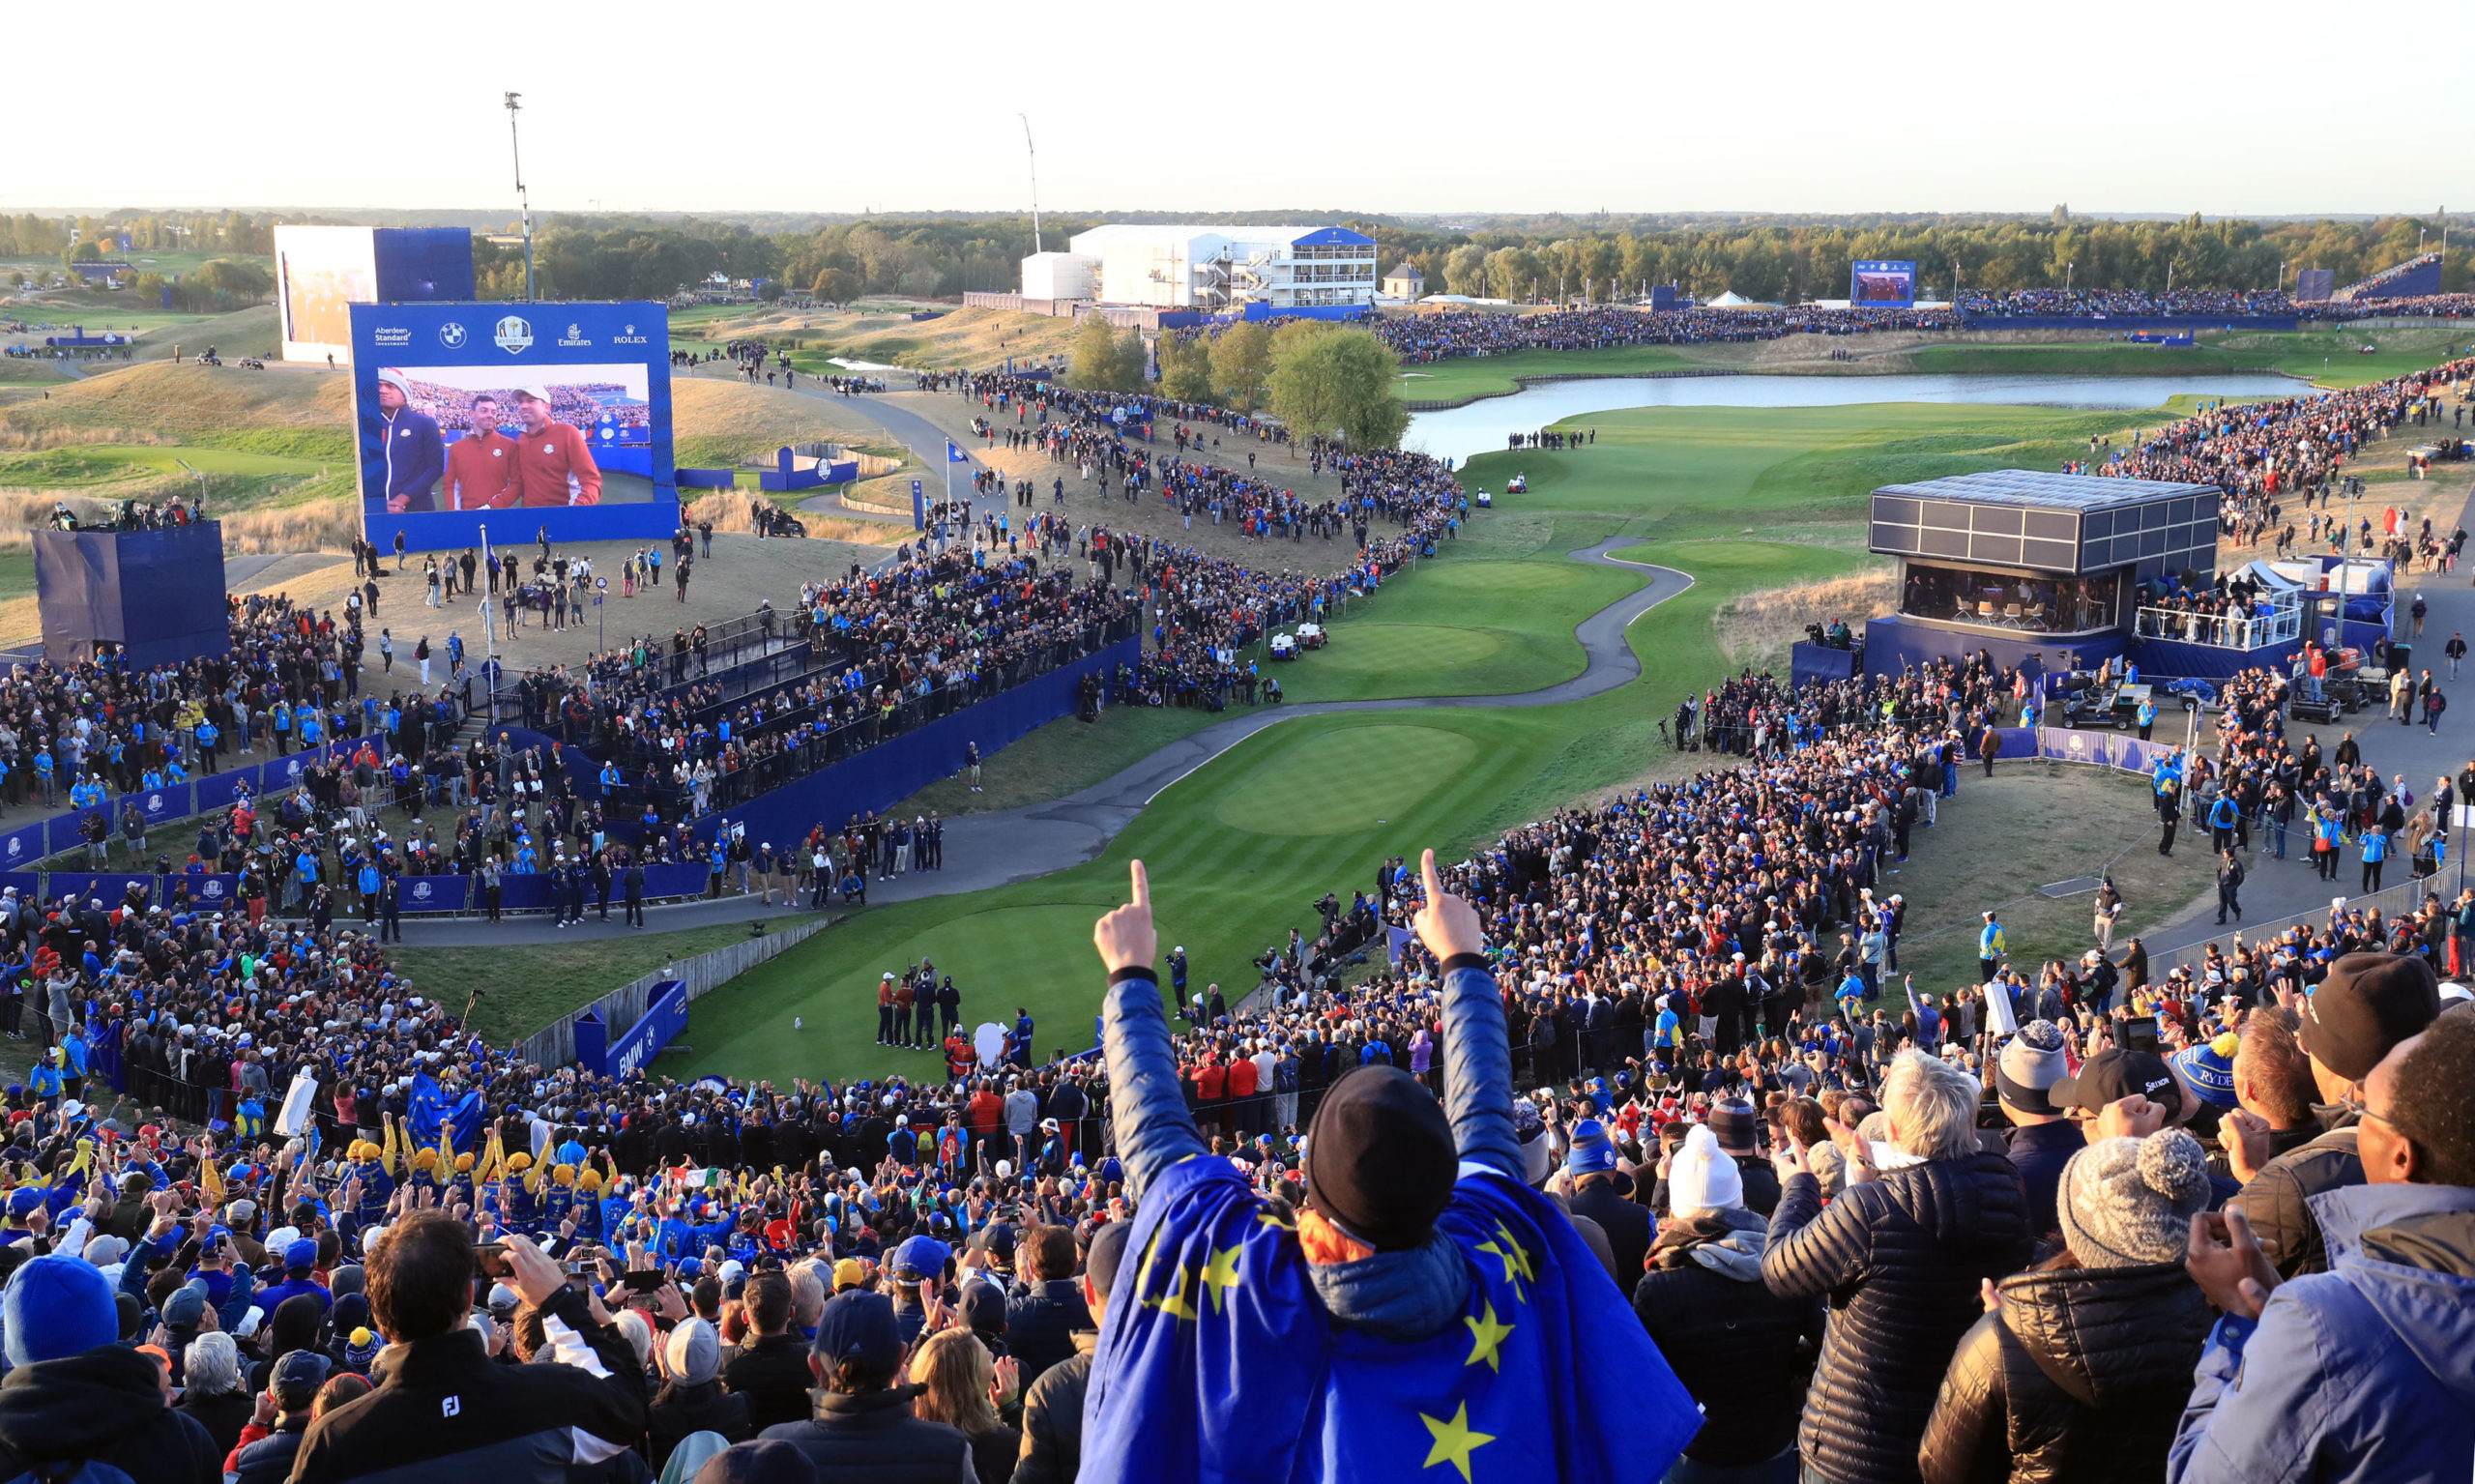 Team USA's Tony Finau and Brooks Koepka and Team Europe's Rory McIlroy and Sergio Garcia on the 1st tee during the Fourballs match on day two of the Ryder Cup at Le Golf National, Saint-Quentin-en-Yvelines, Paris.